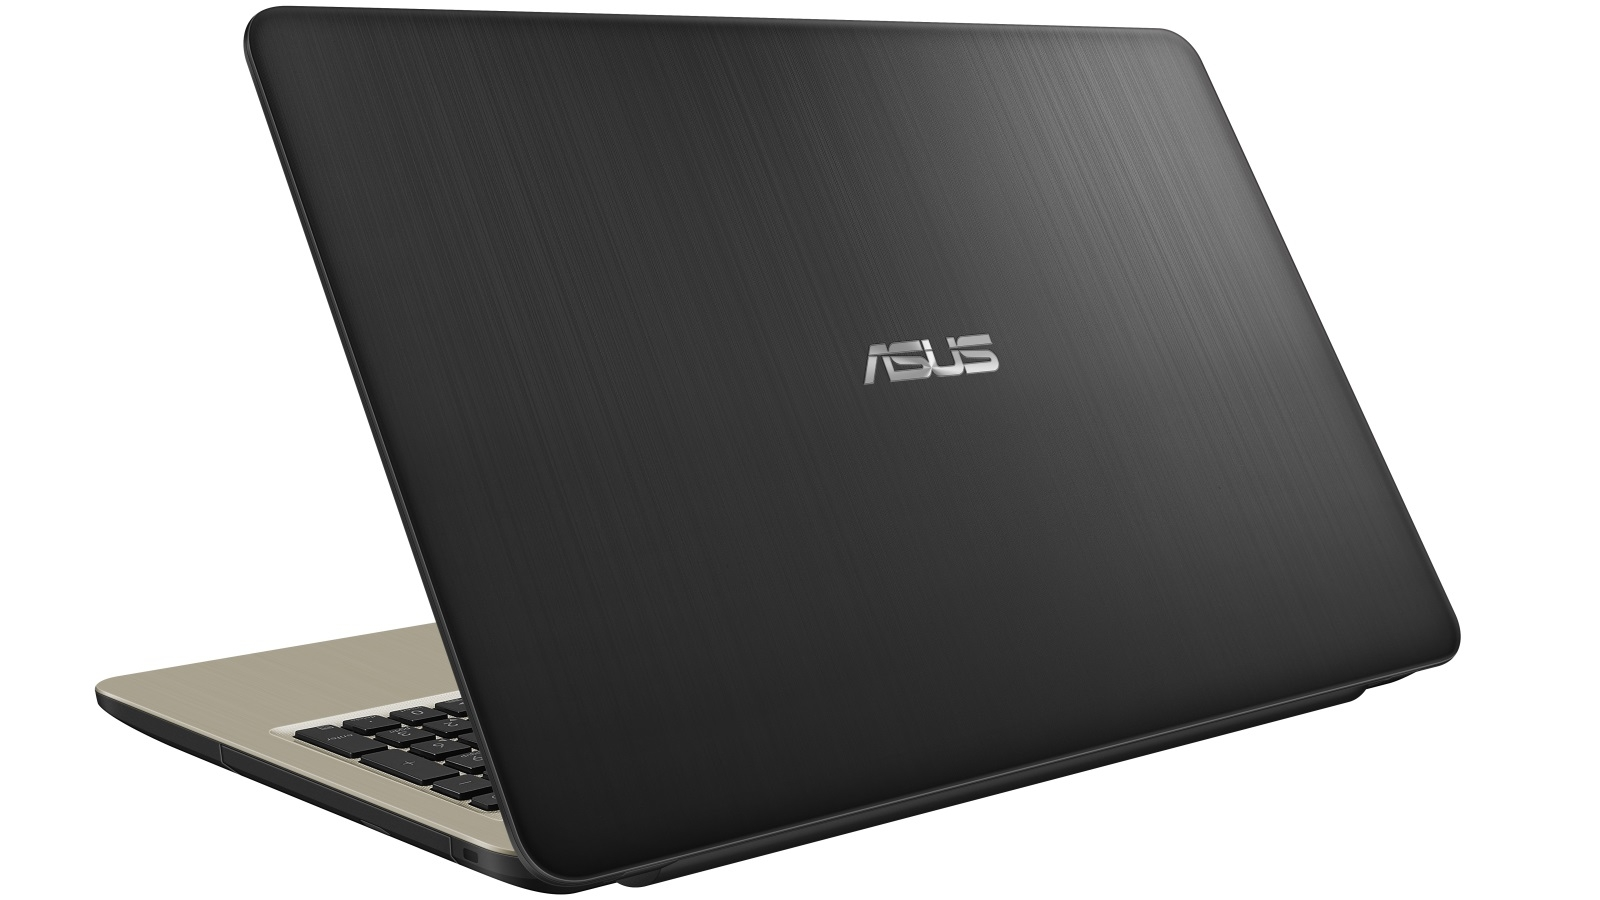 premium selection aa157 30a4a Asus Vivobook F540MA-GQ411T 15.6-inch Laptop